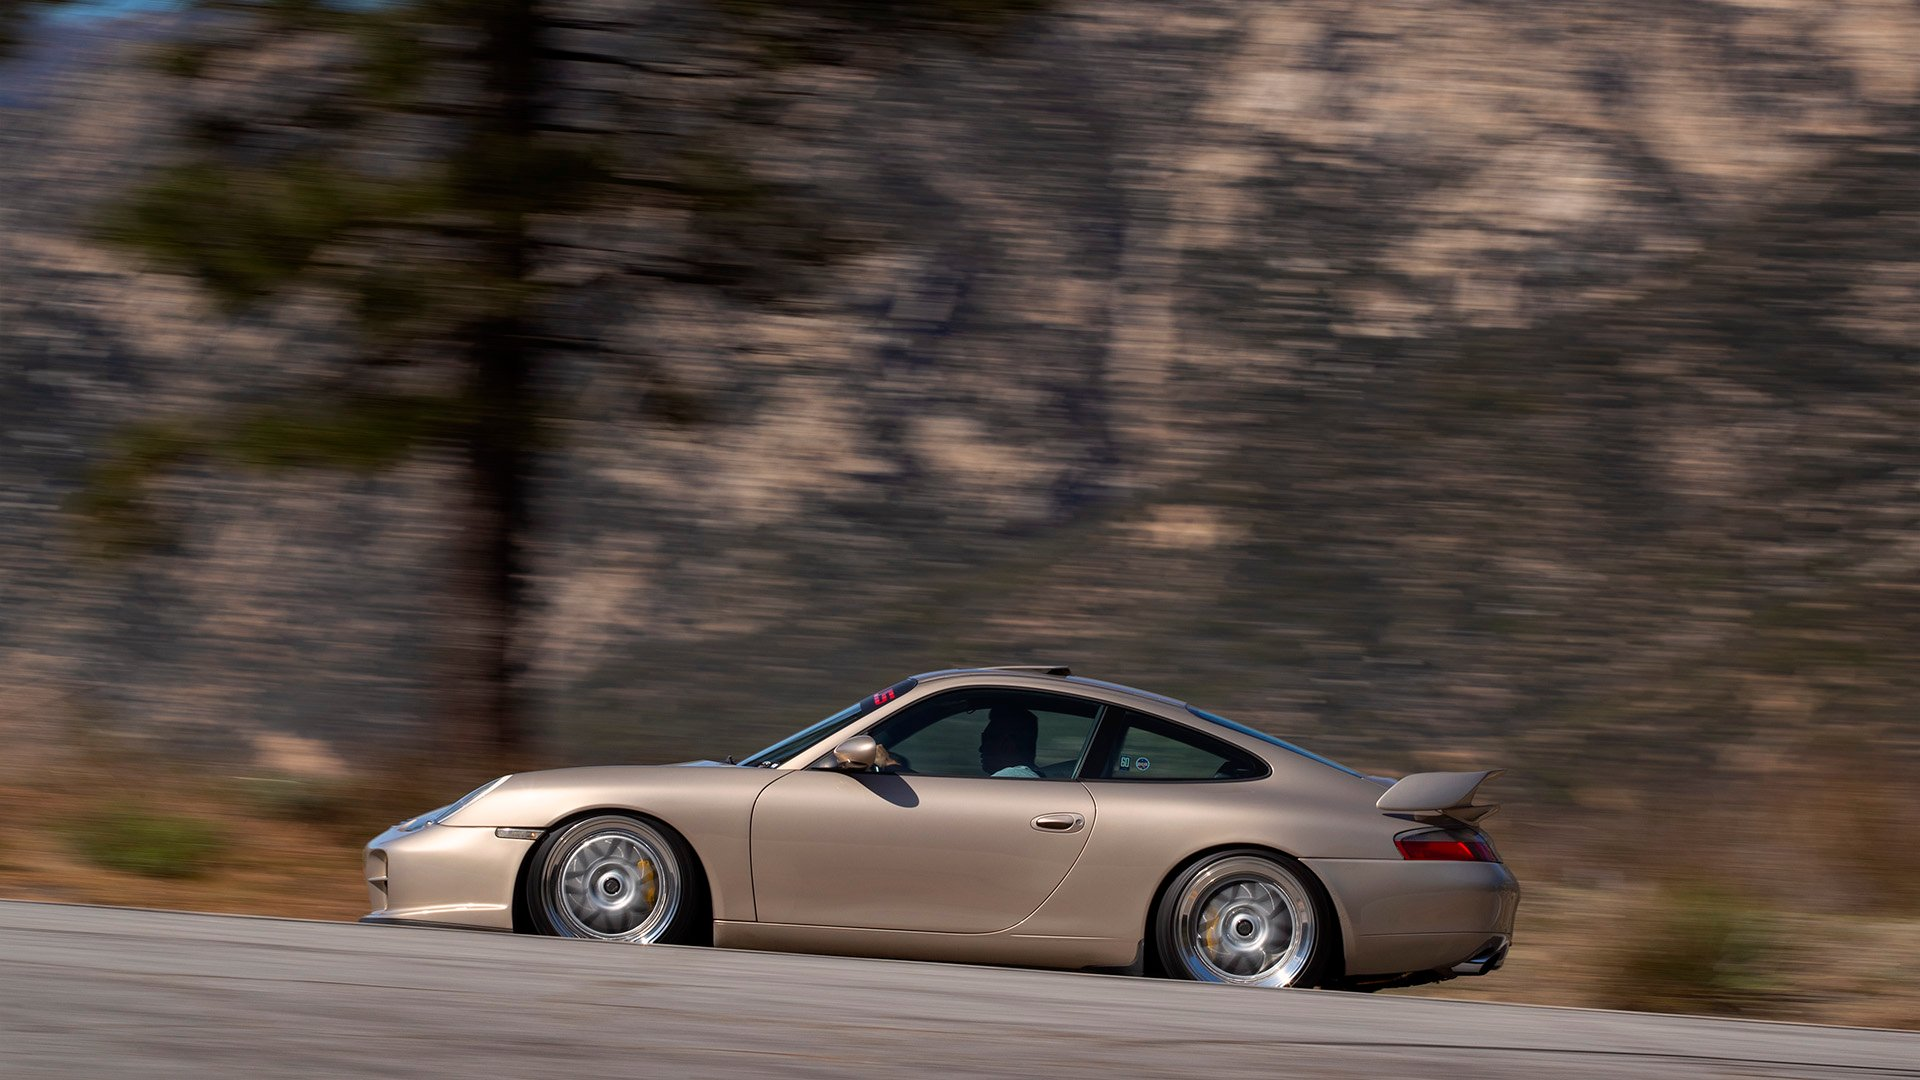 Nine Nine Sick – Porsche 996 911 Carrera 2